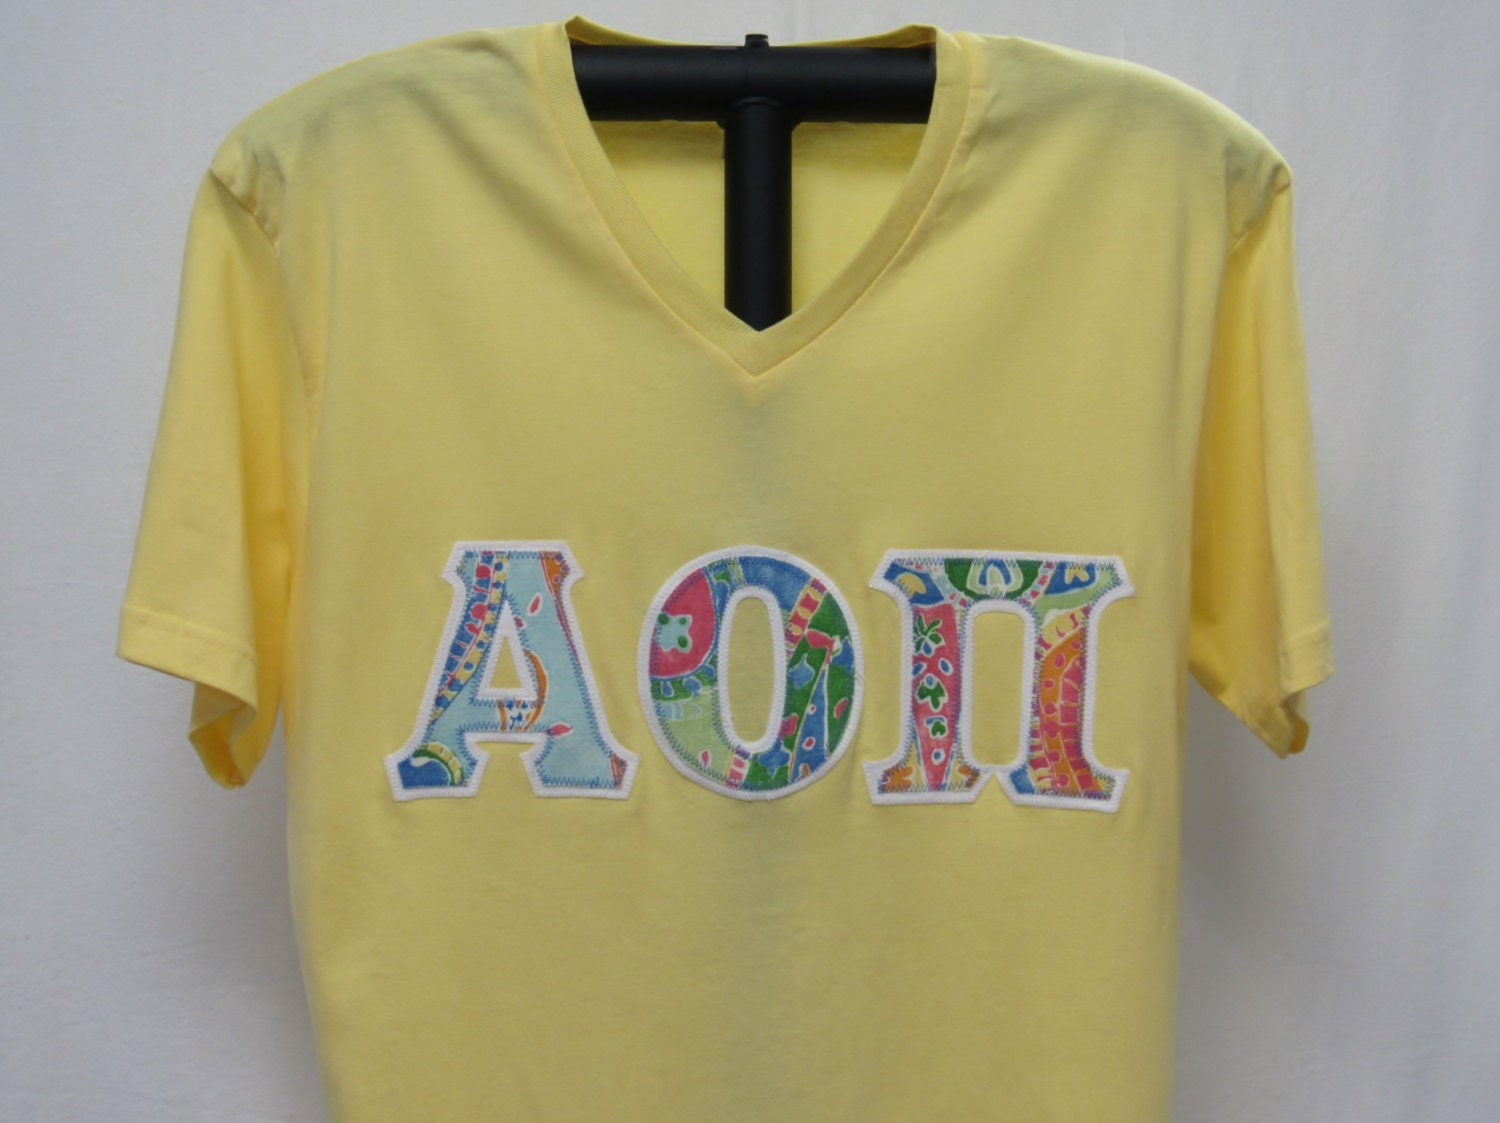 Closeout 15 off orig price on remaining sizes in stock for Cute greek letter shirts